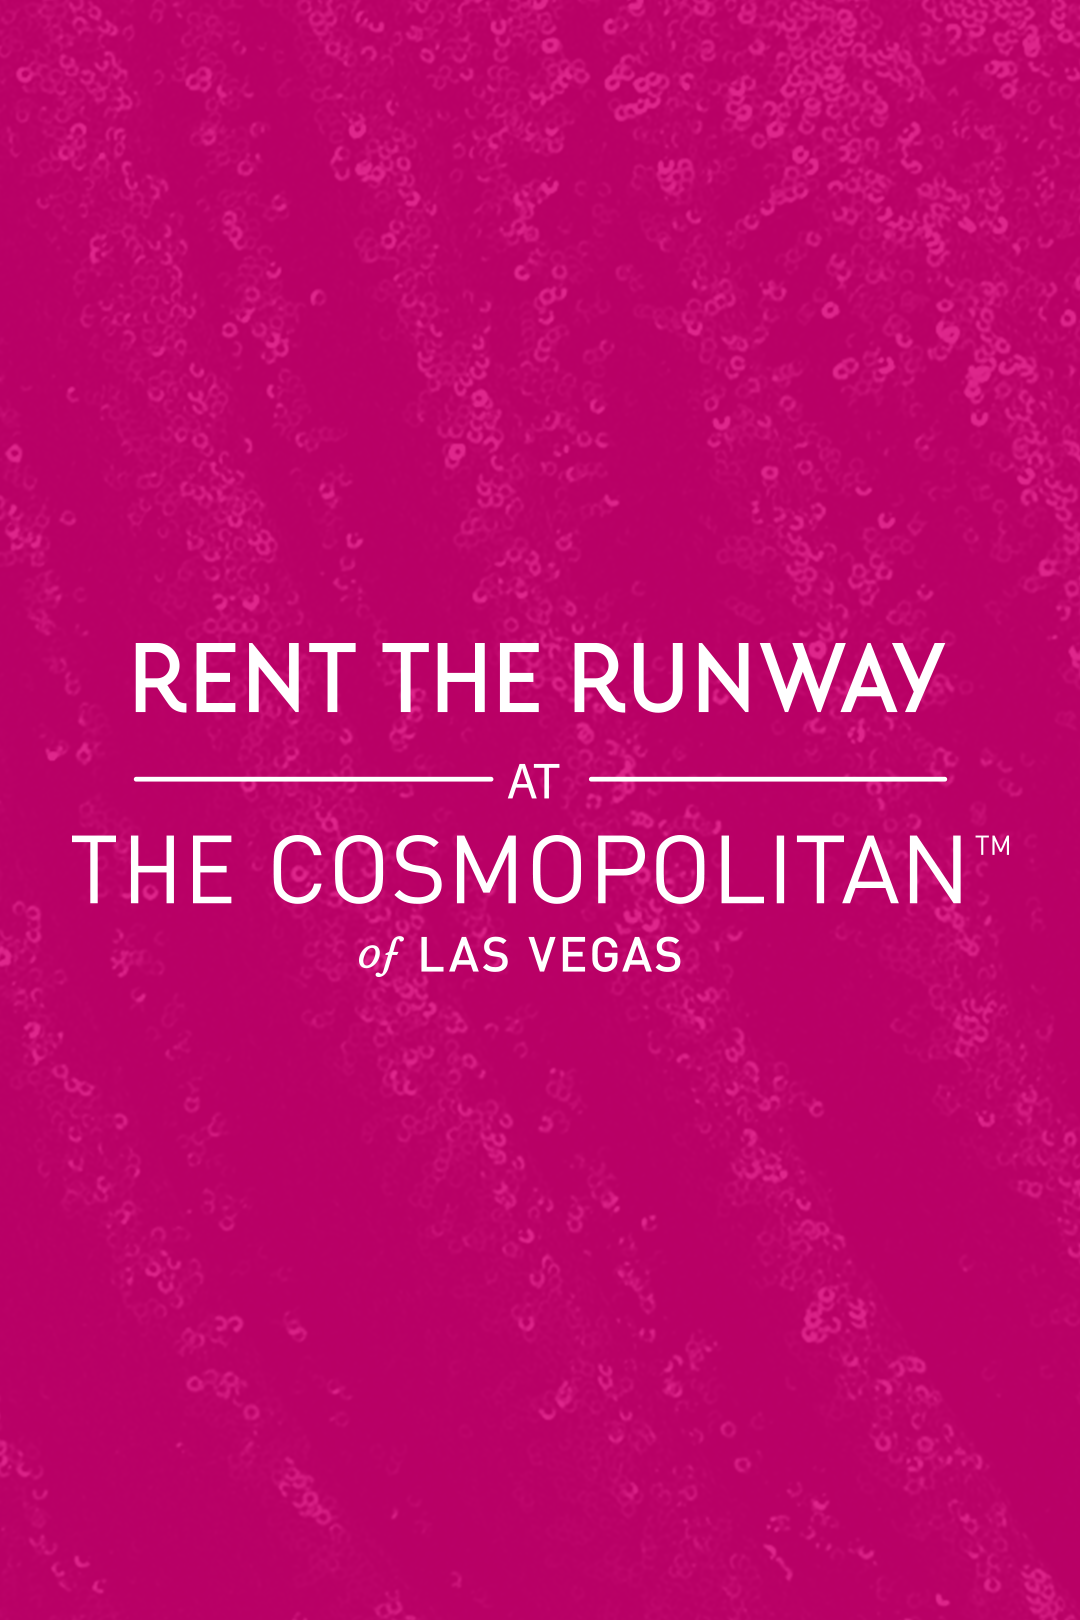 RTR Concierge Service by Rent the Runway